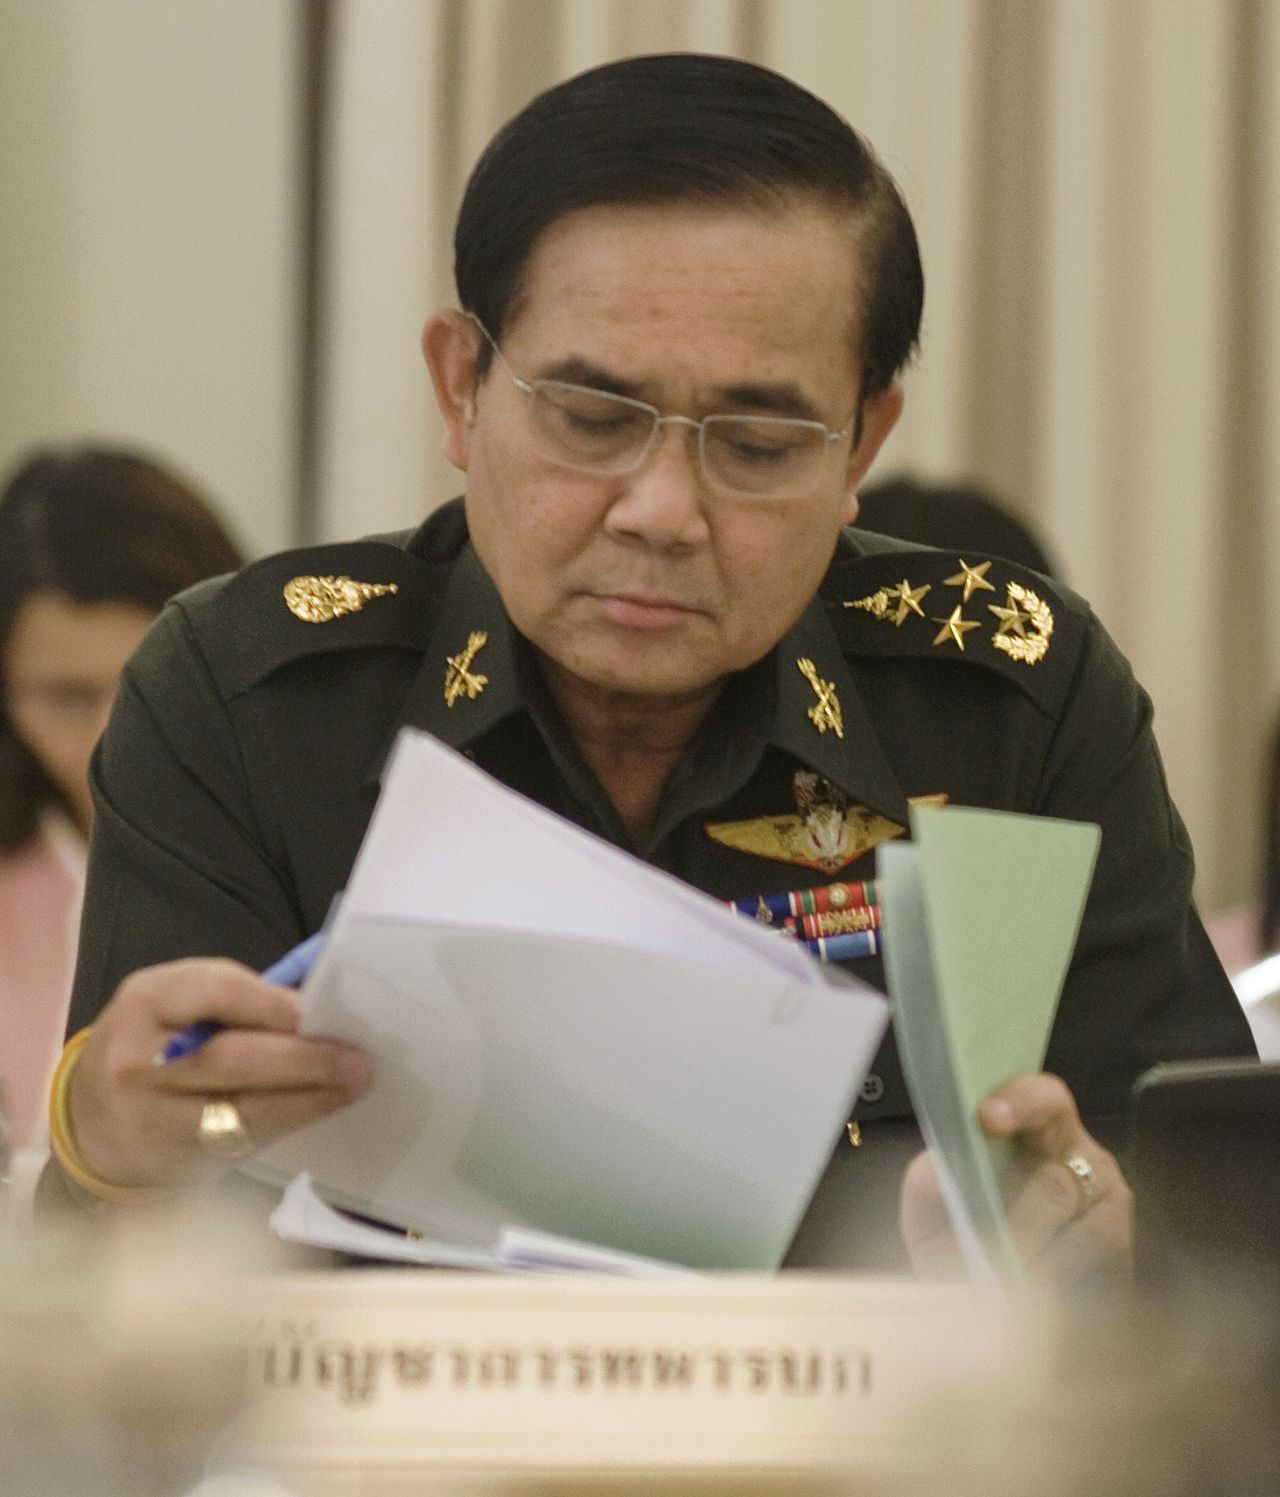 Prayuth_Jan-ocha_2010-06-17_Cropped